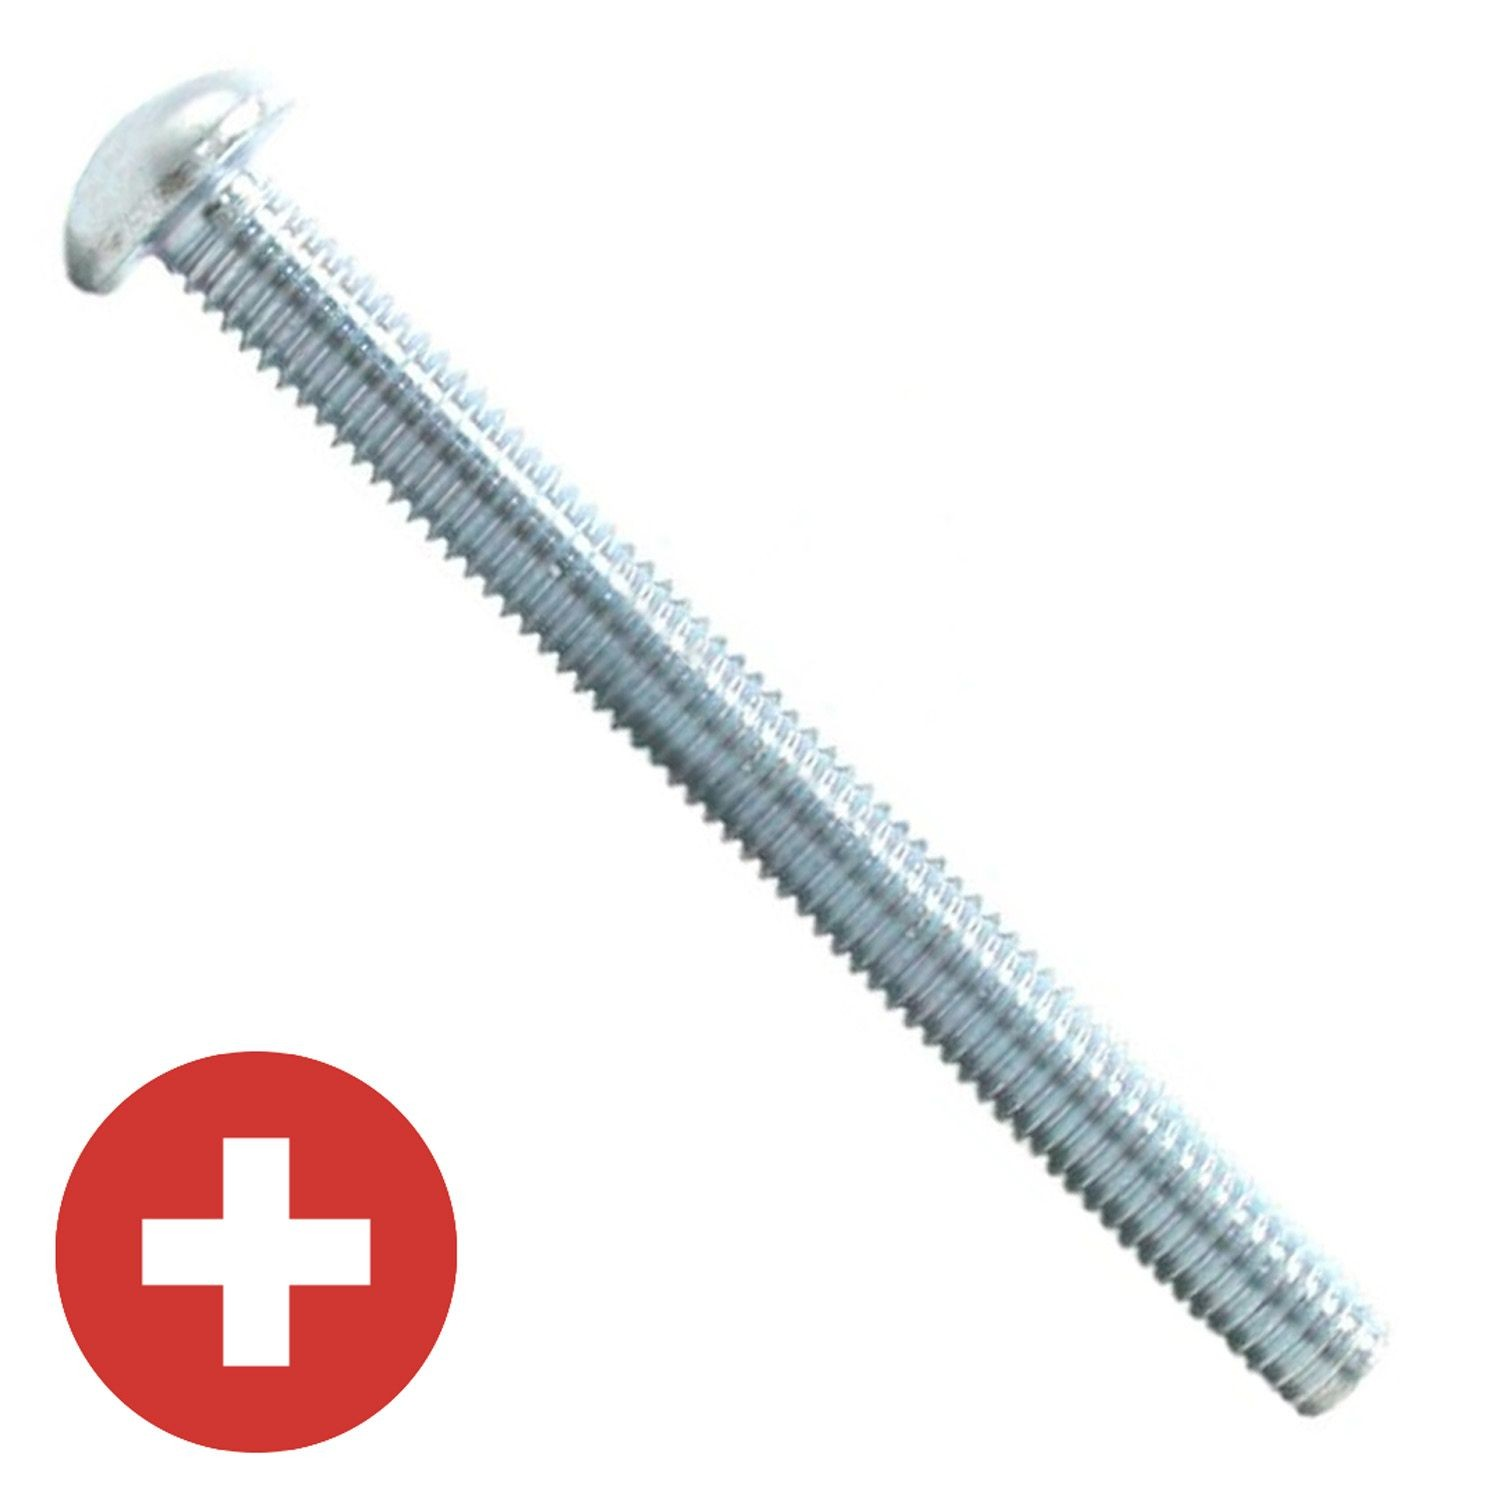 "#10-24 x 1"" Zinc Plated Phillips Round Head Machine Screw"